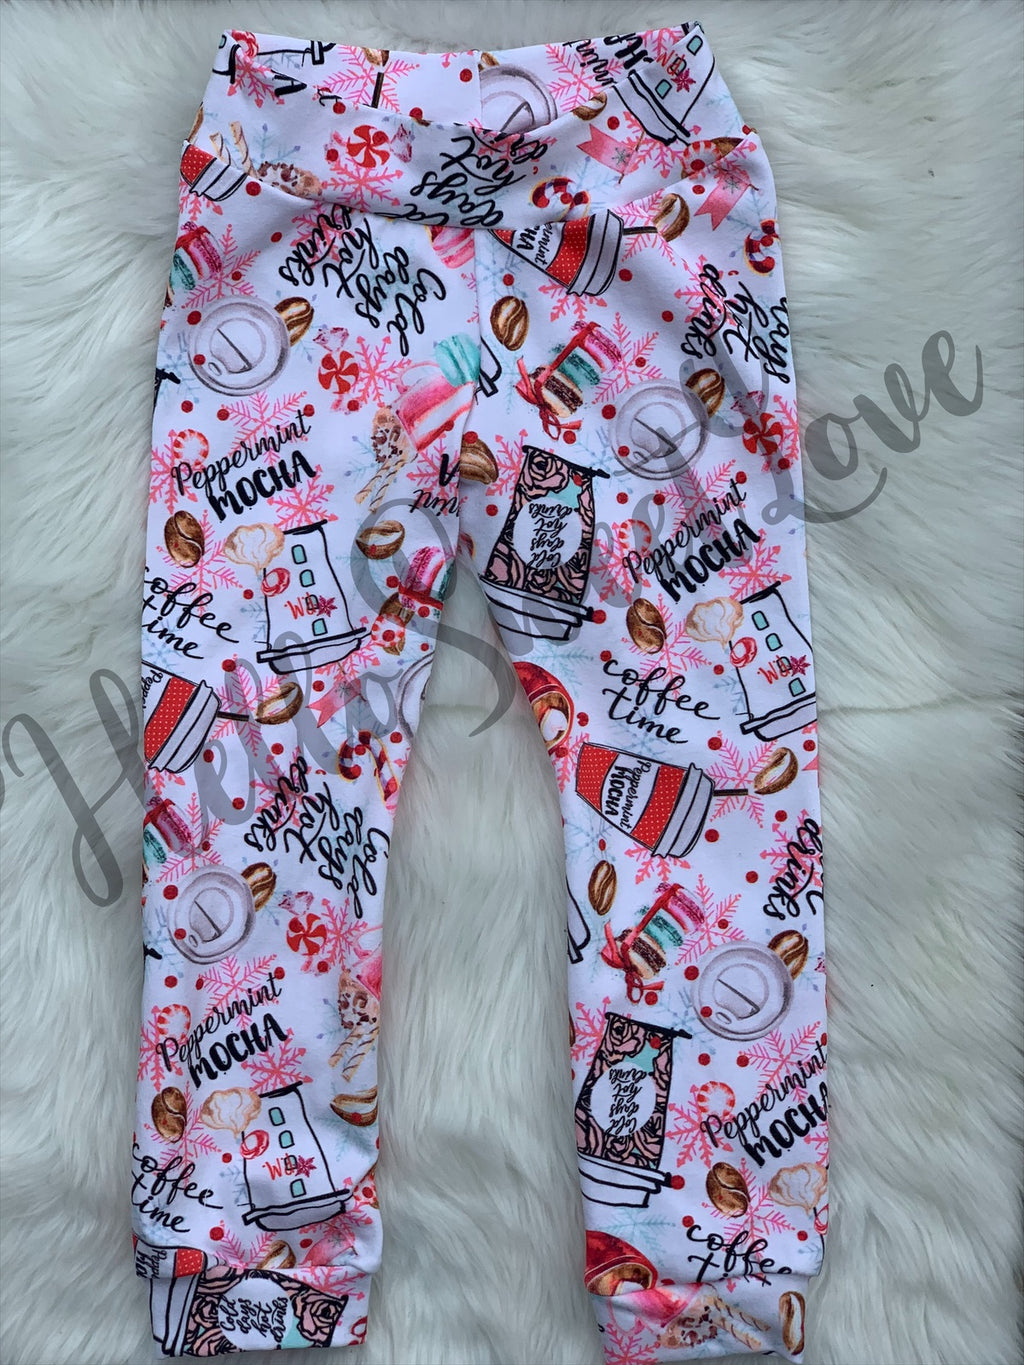 RTS Peppermint mocha pants